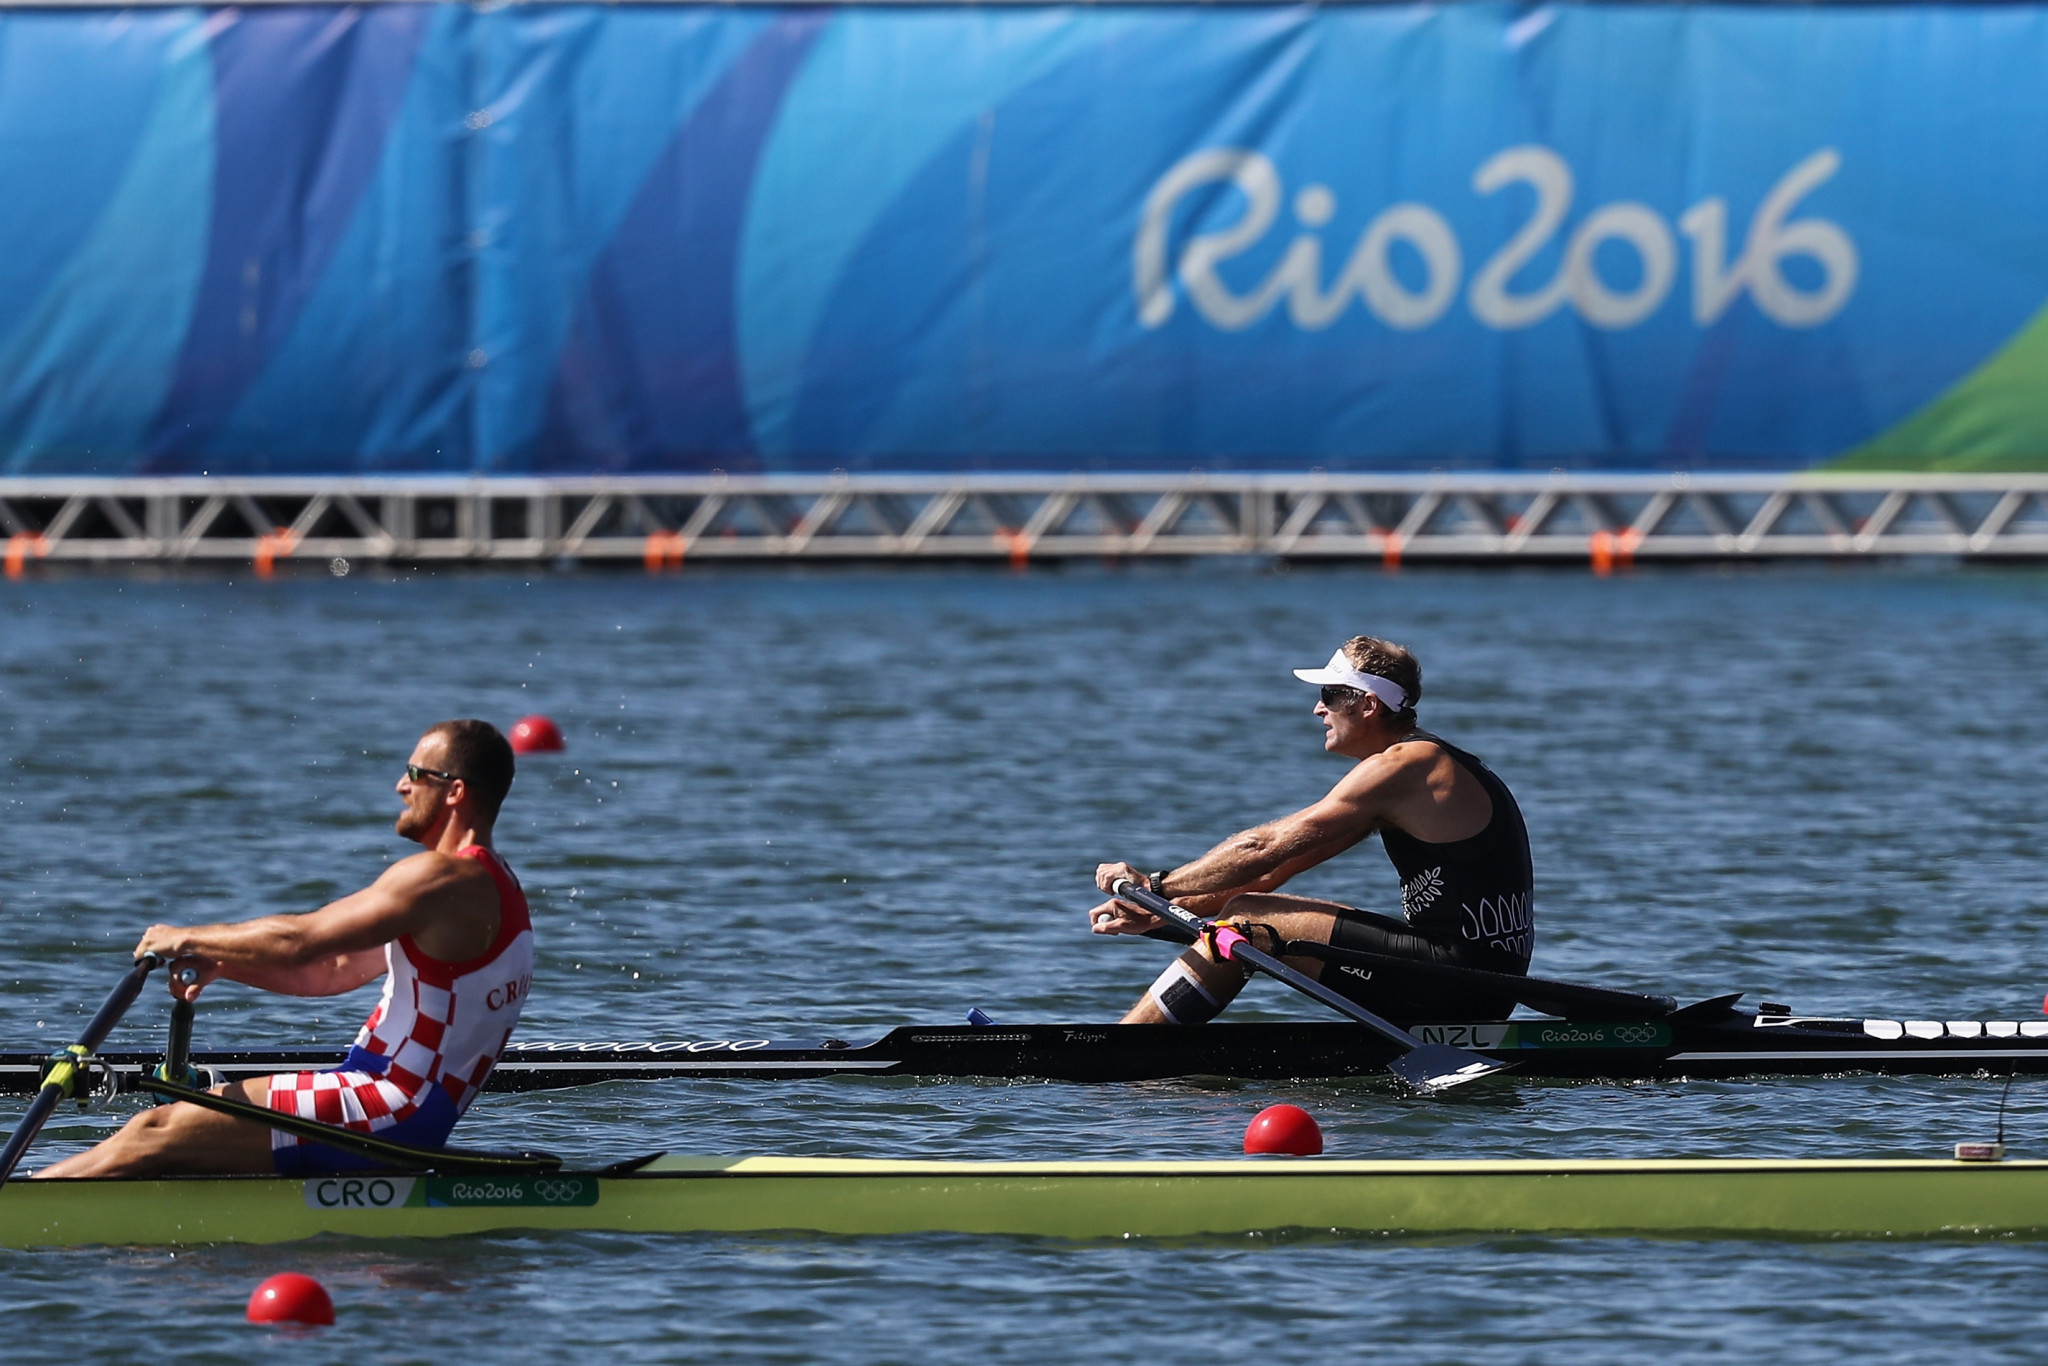 Olympic champion Drysdale marks return to international action by winning heat at World Rowing Cup